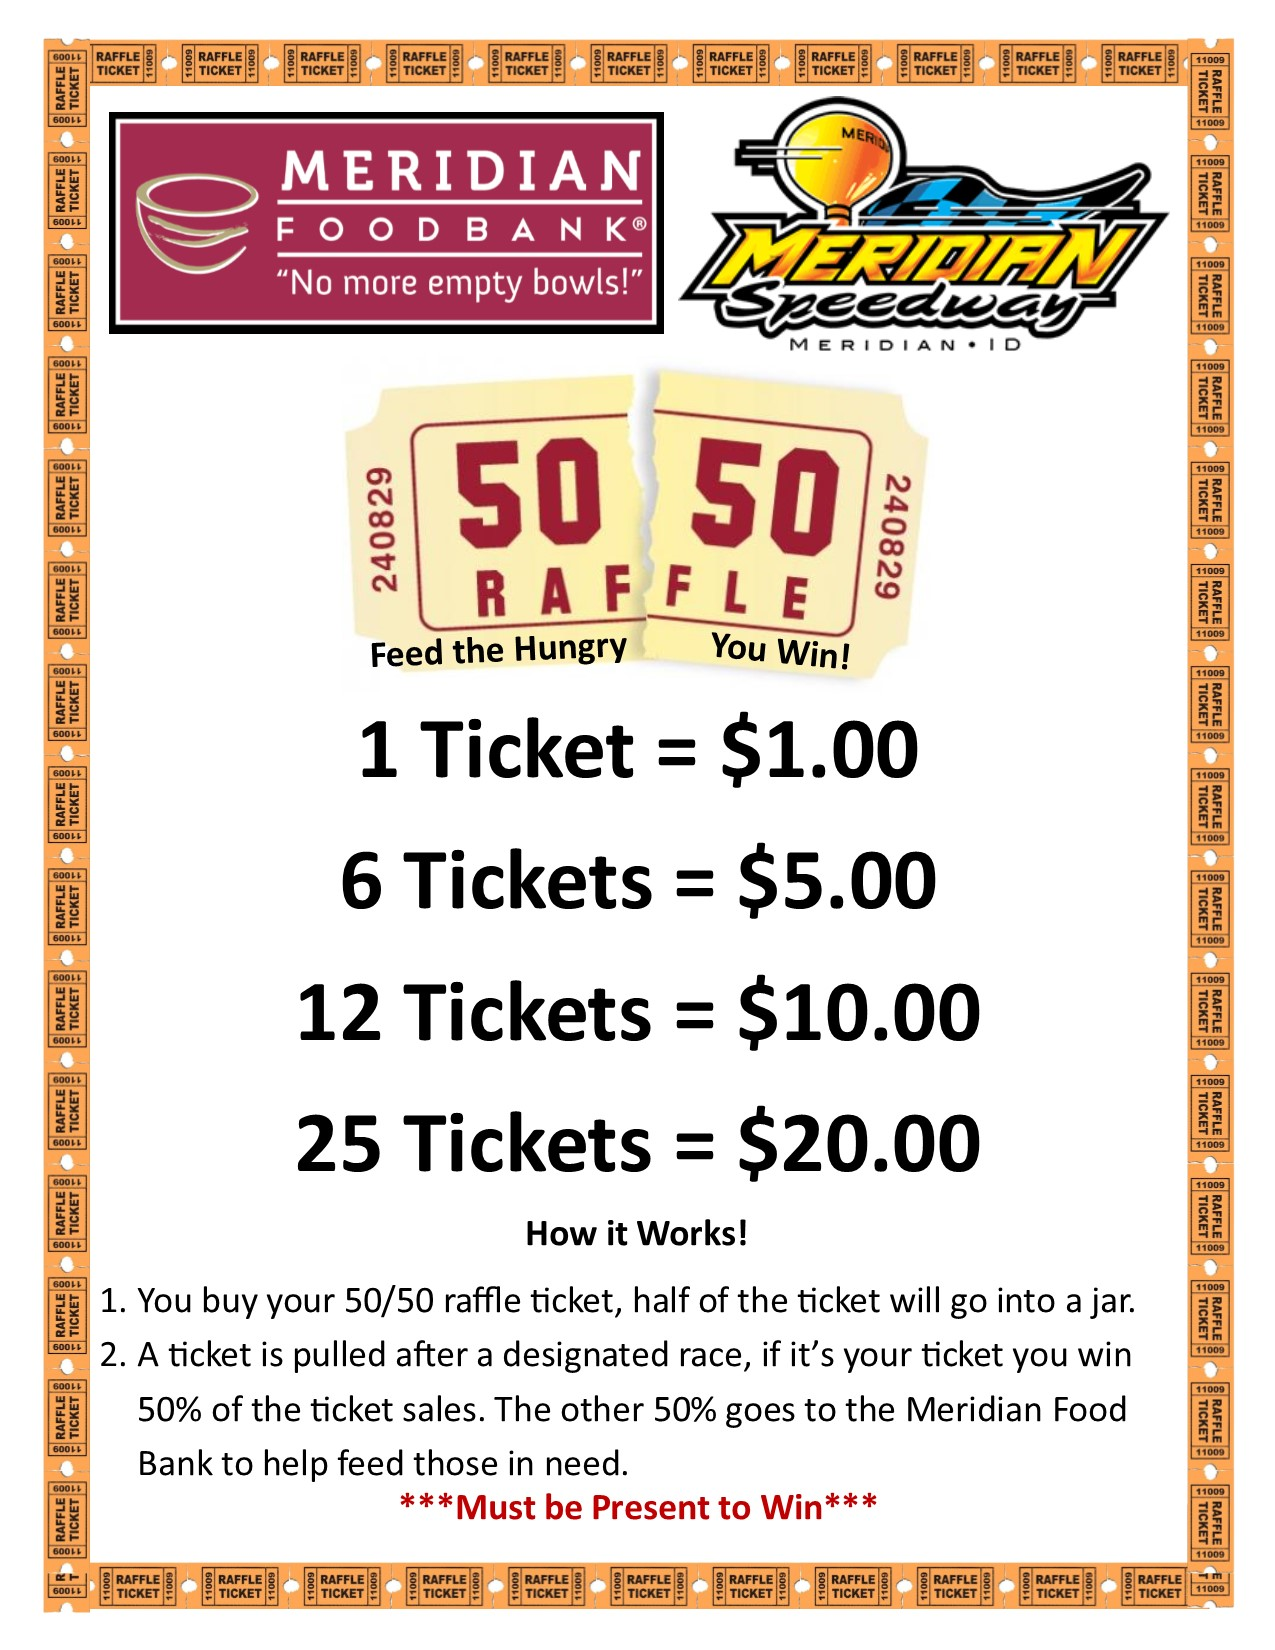 speedway 50 50 meridian food bank raffle sign 8x11 2016